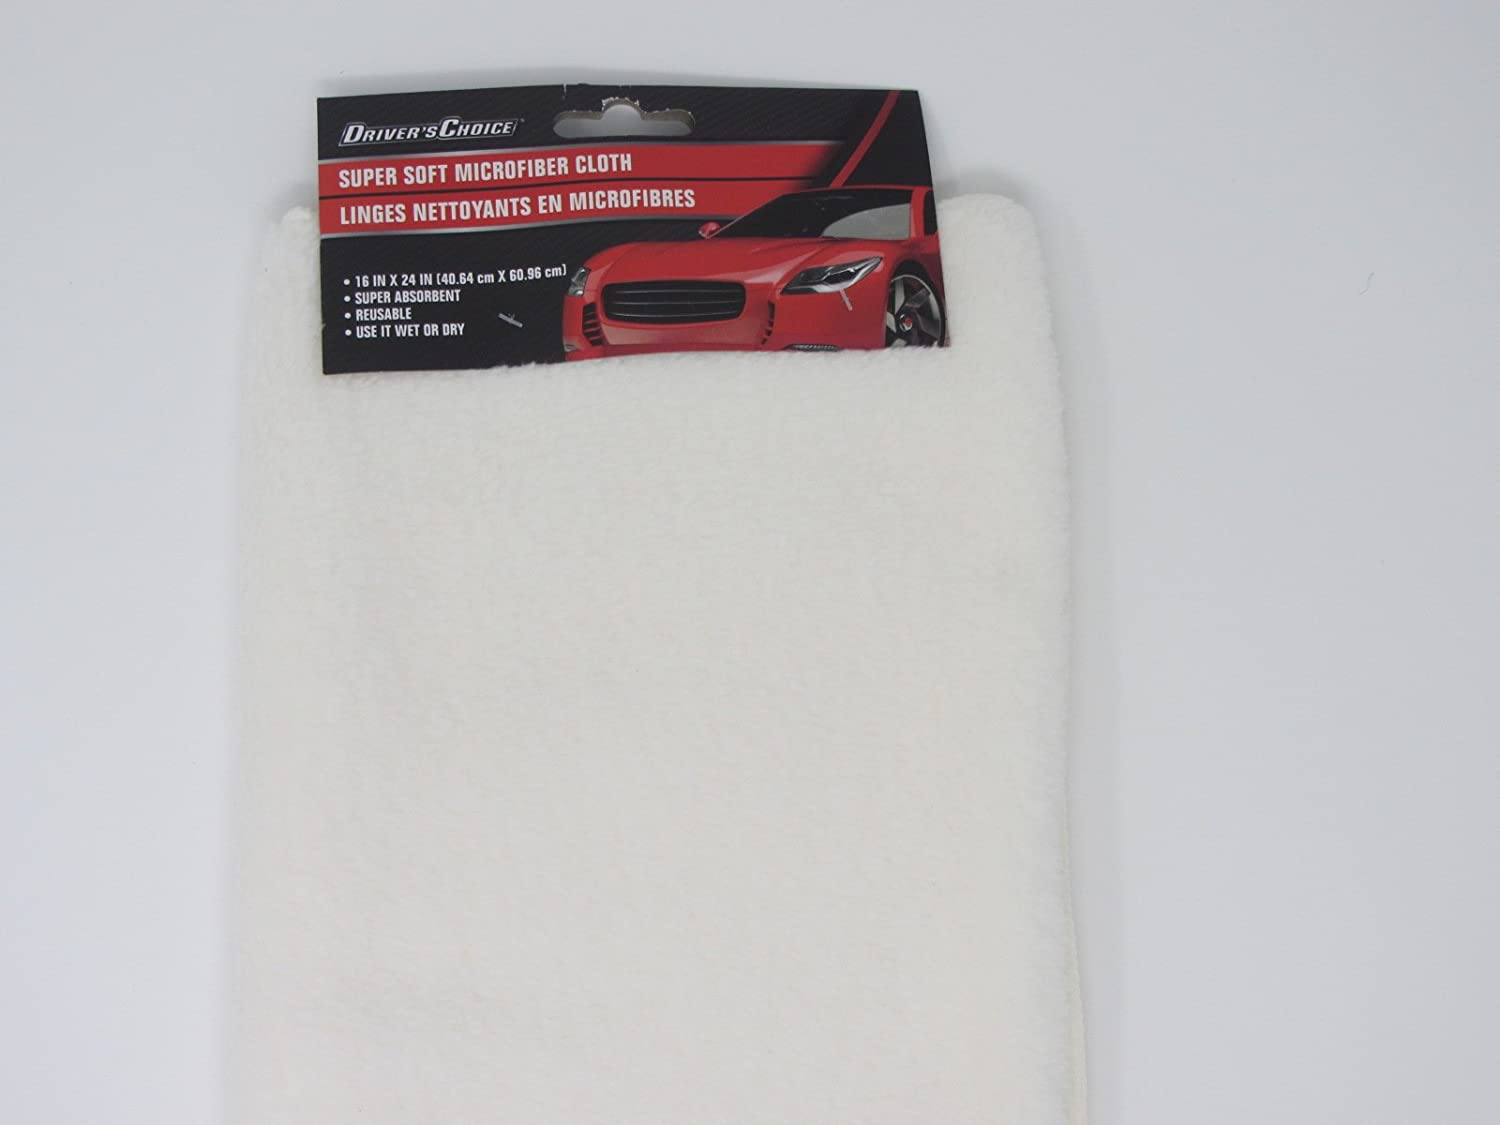 Driver's Choice Microfiber Cloth for Car Care Super Soft and Absorbent 16x24 Greenbrier International